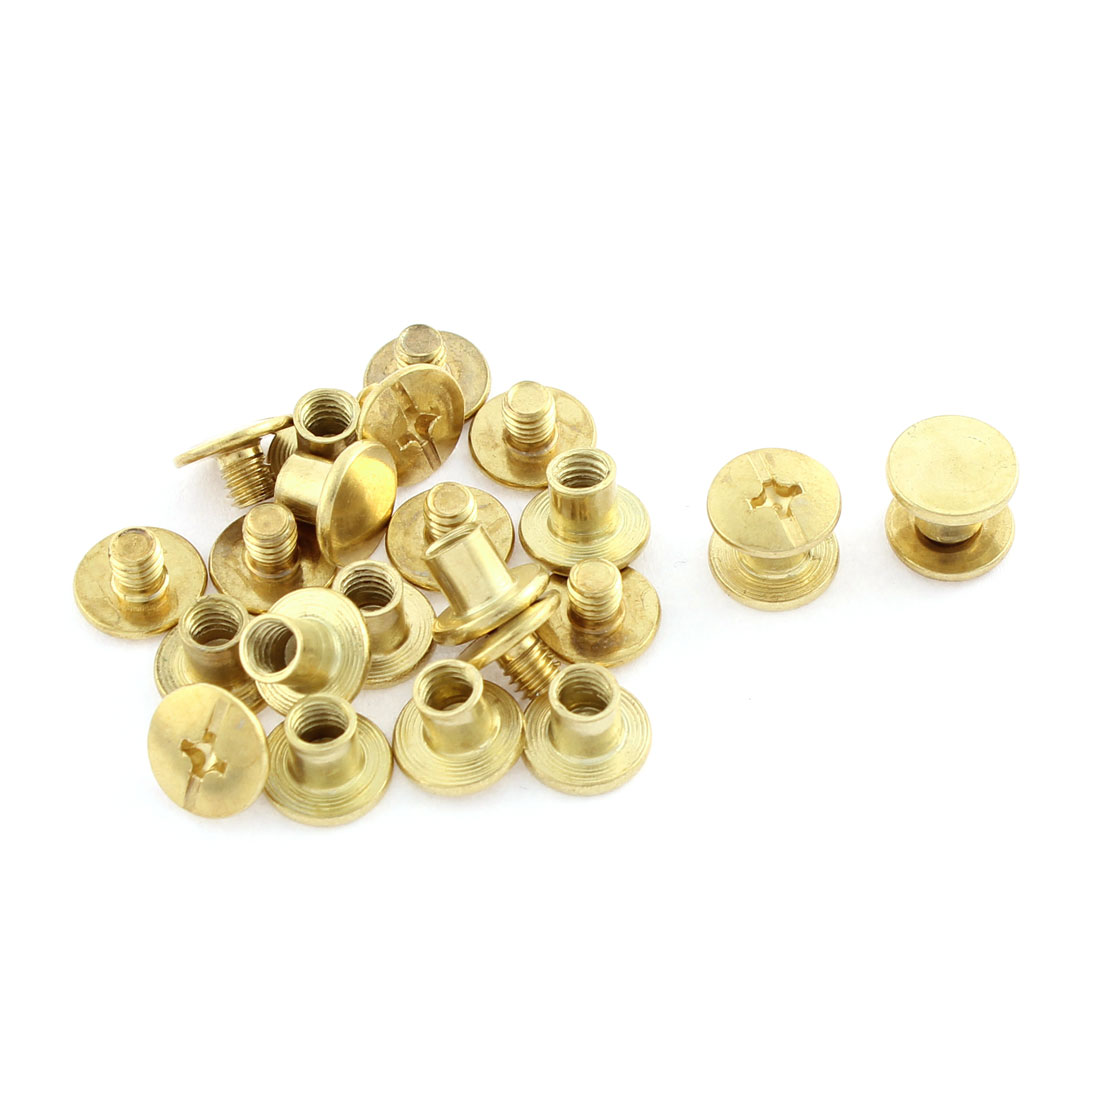 12 Pair 4mmx5mm Brass Plated Binding Chicago Screw Post for Leather Purse Belt